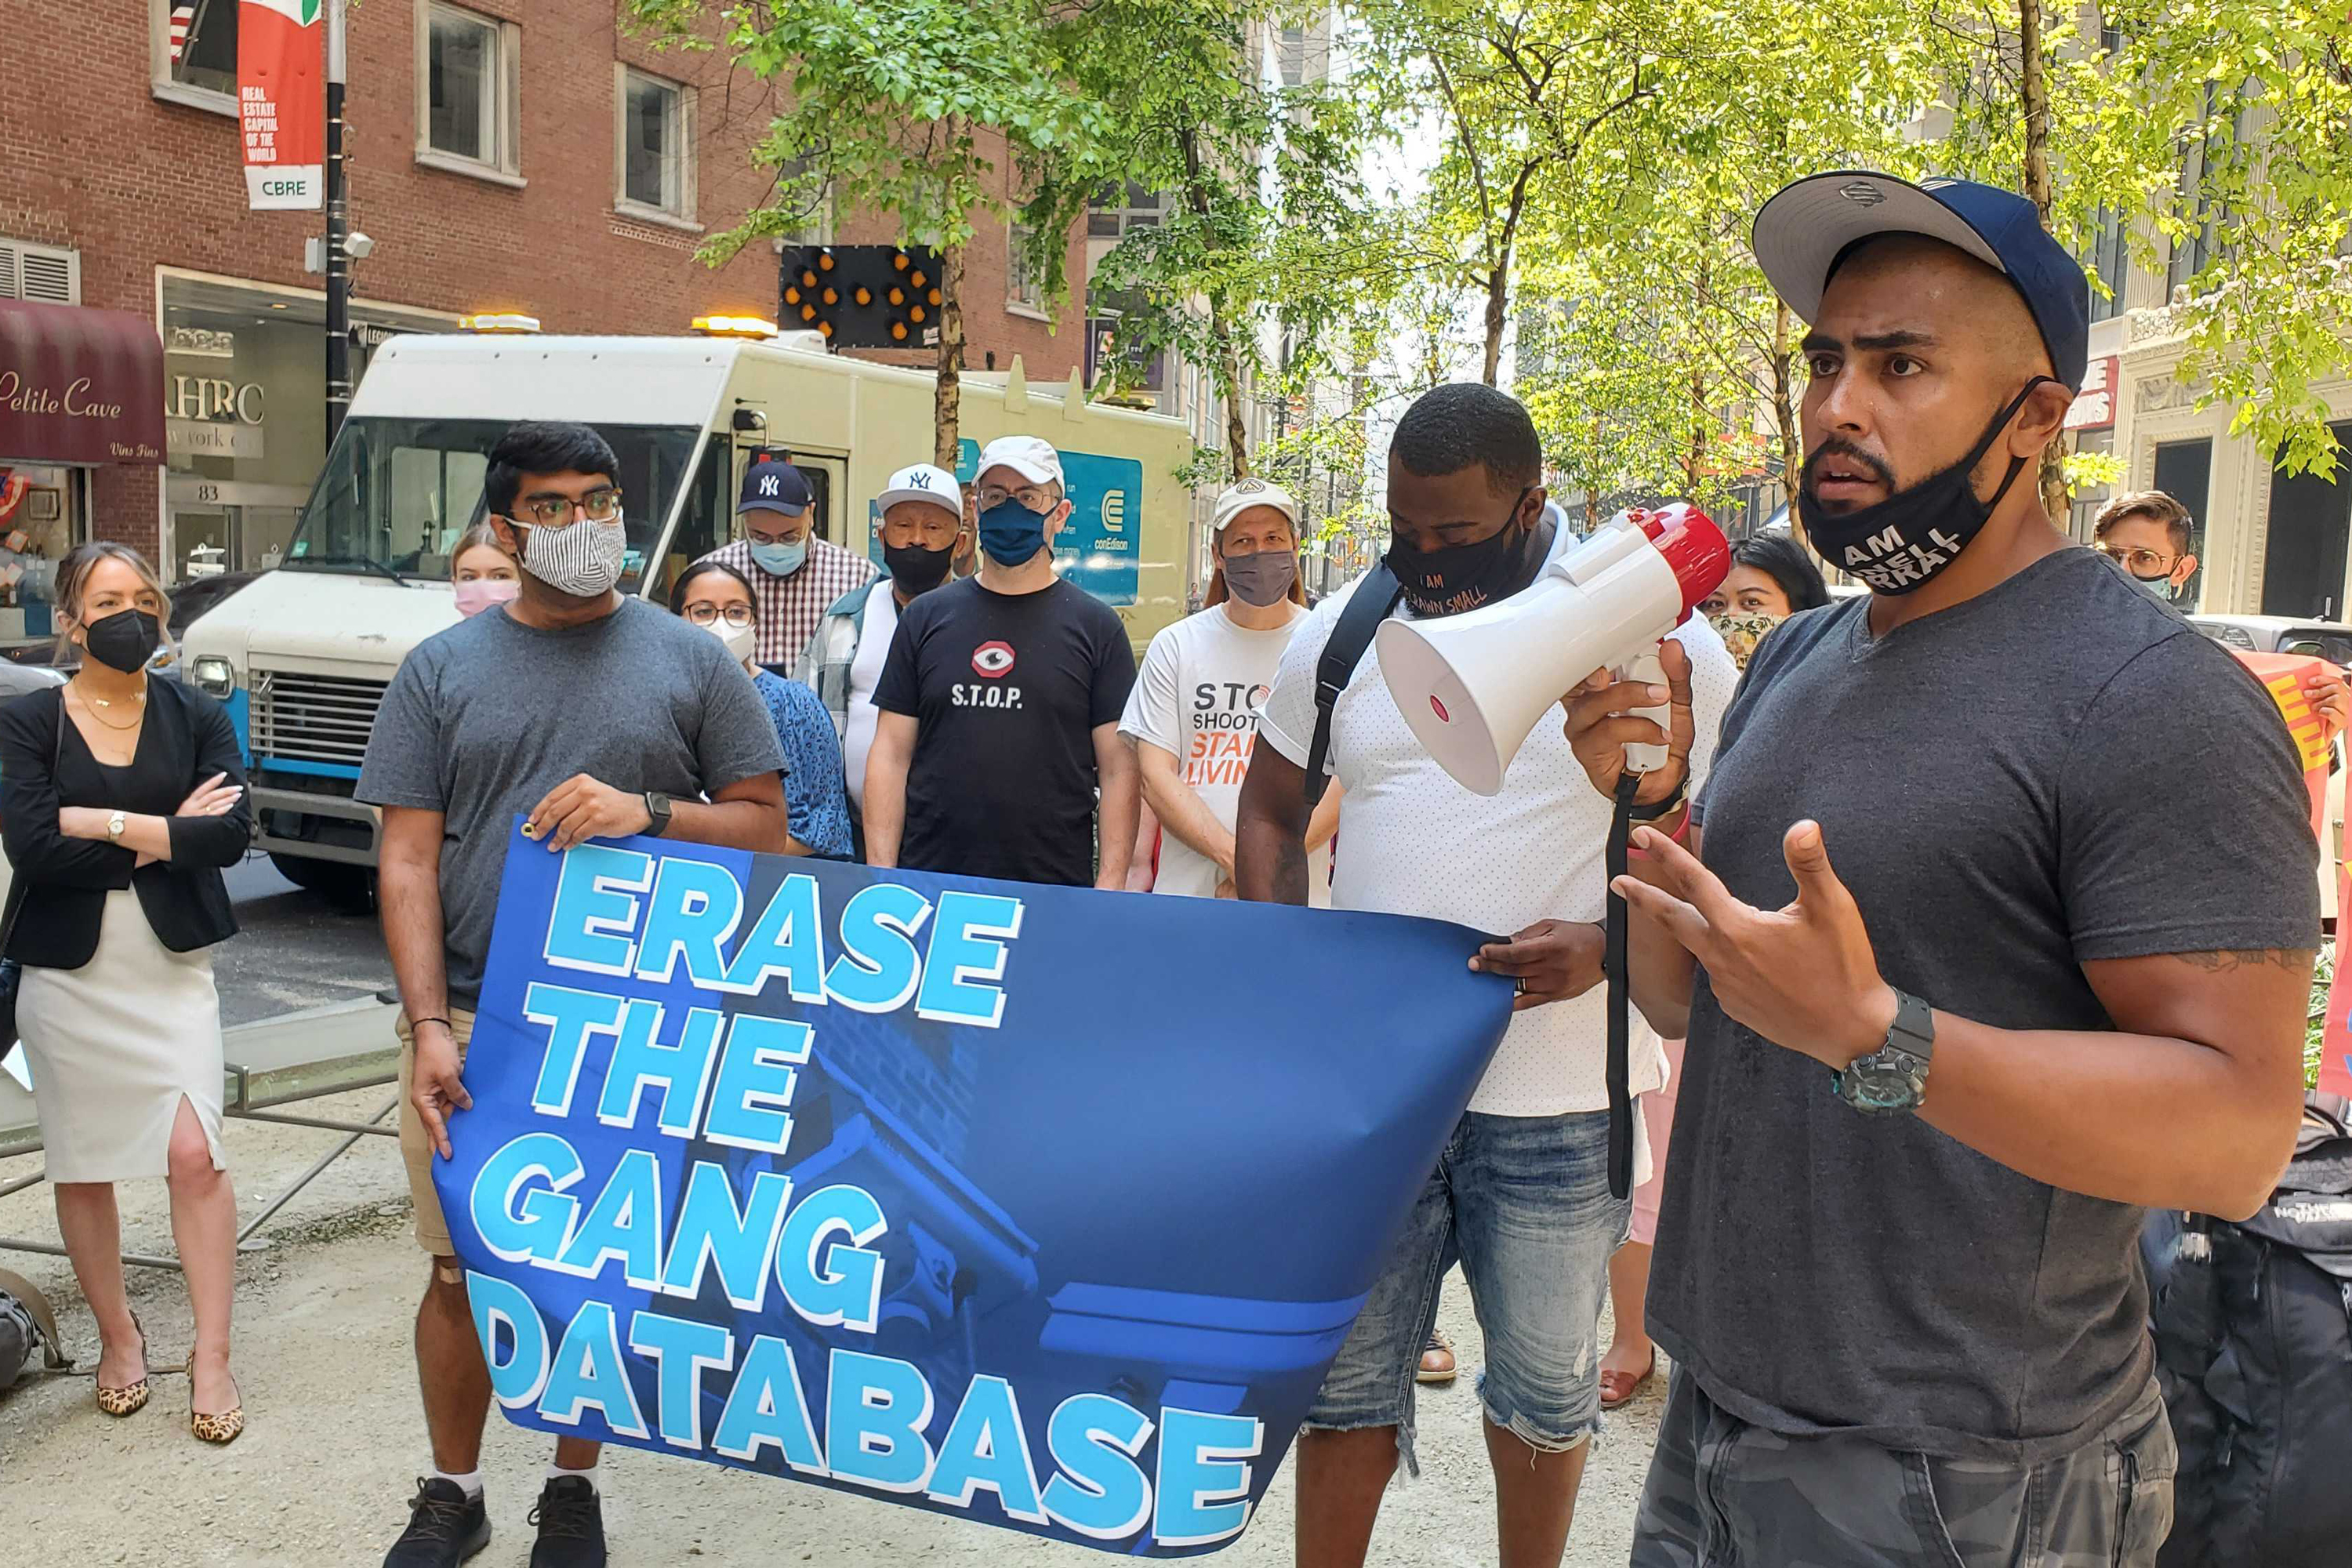 Members of the Grassroots Advocates for Neighborhood Groups & Solutions coalition protest outside of the NYPD's inspector general's office in Lower Manhattan, July 27, 2021.